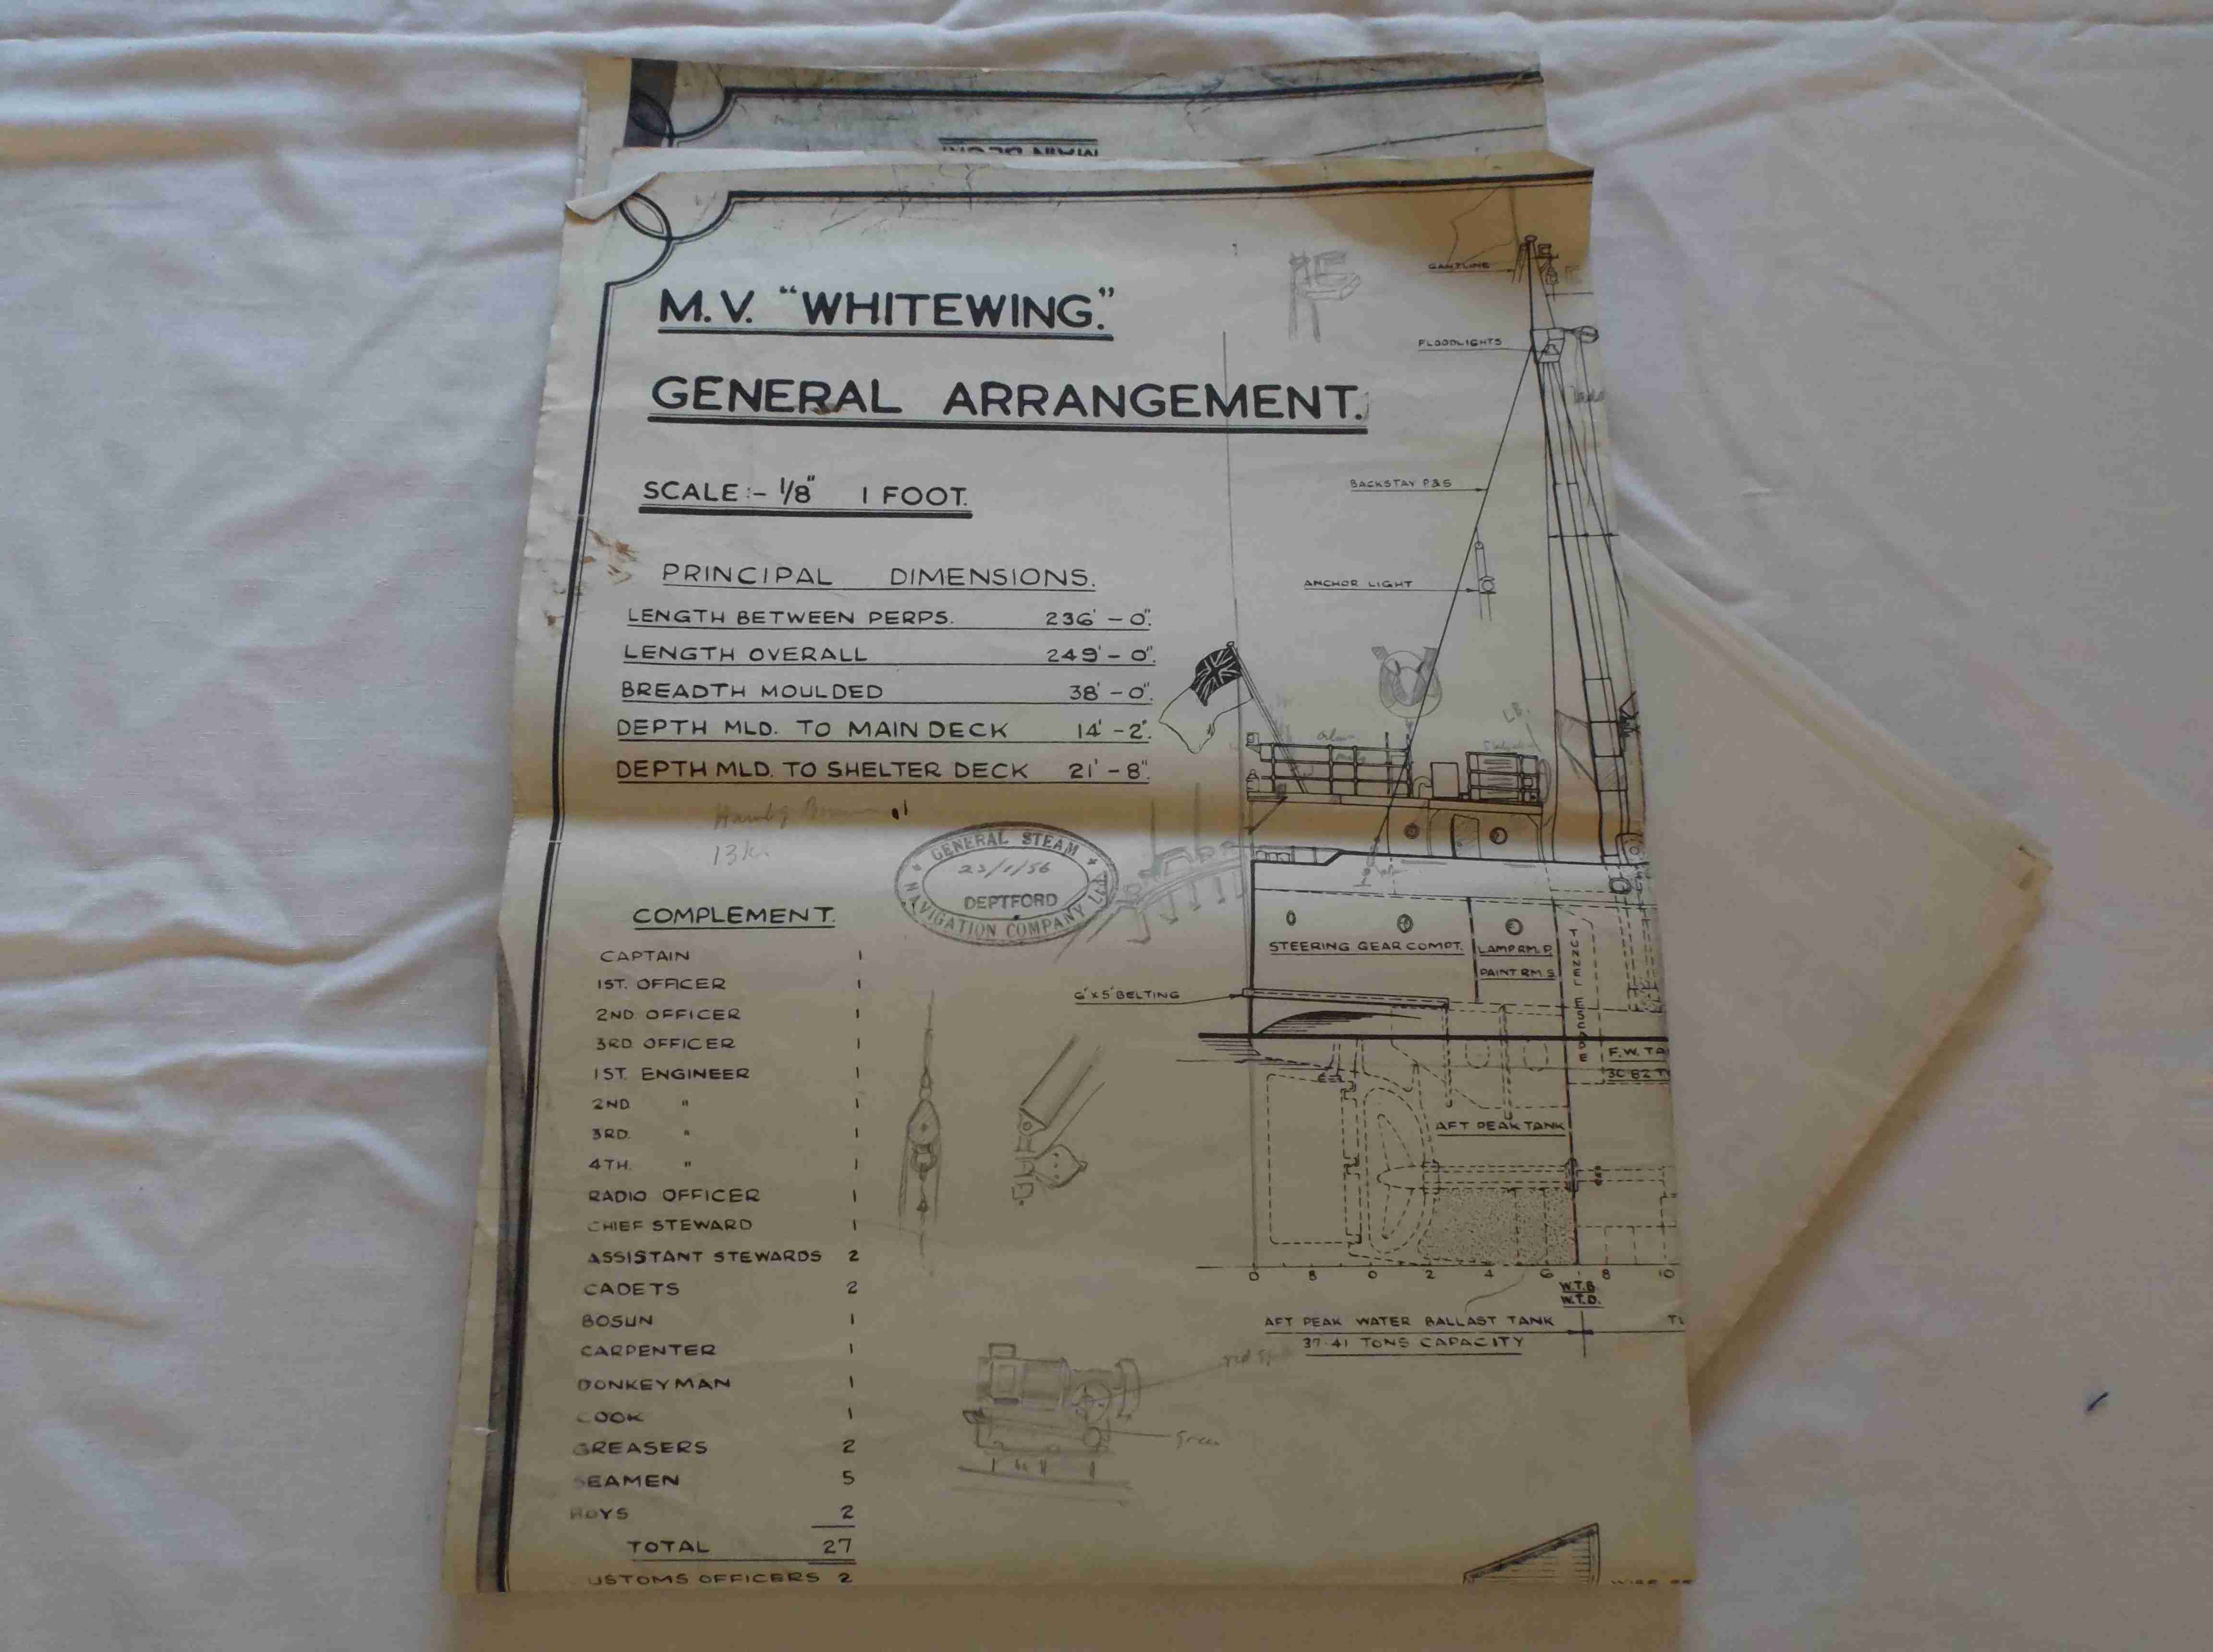 SET OF ORIGINAL SHIPS PLANS FOR THE GENERAL STEAM NAVIGATION COMPANY VESSEL THE WHITEWING